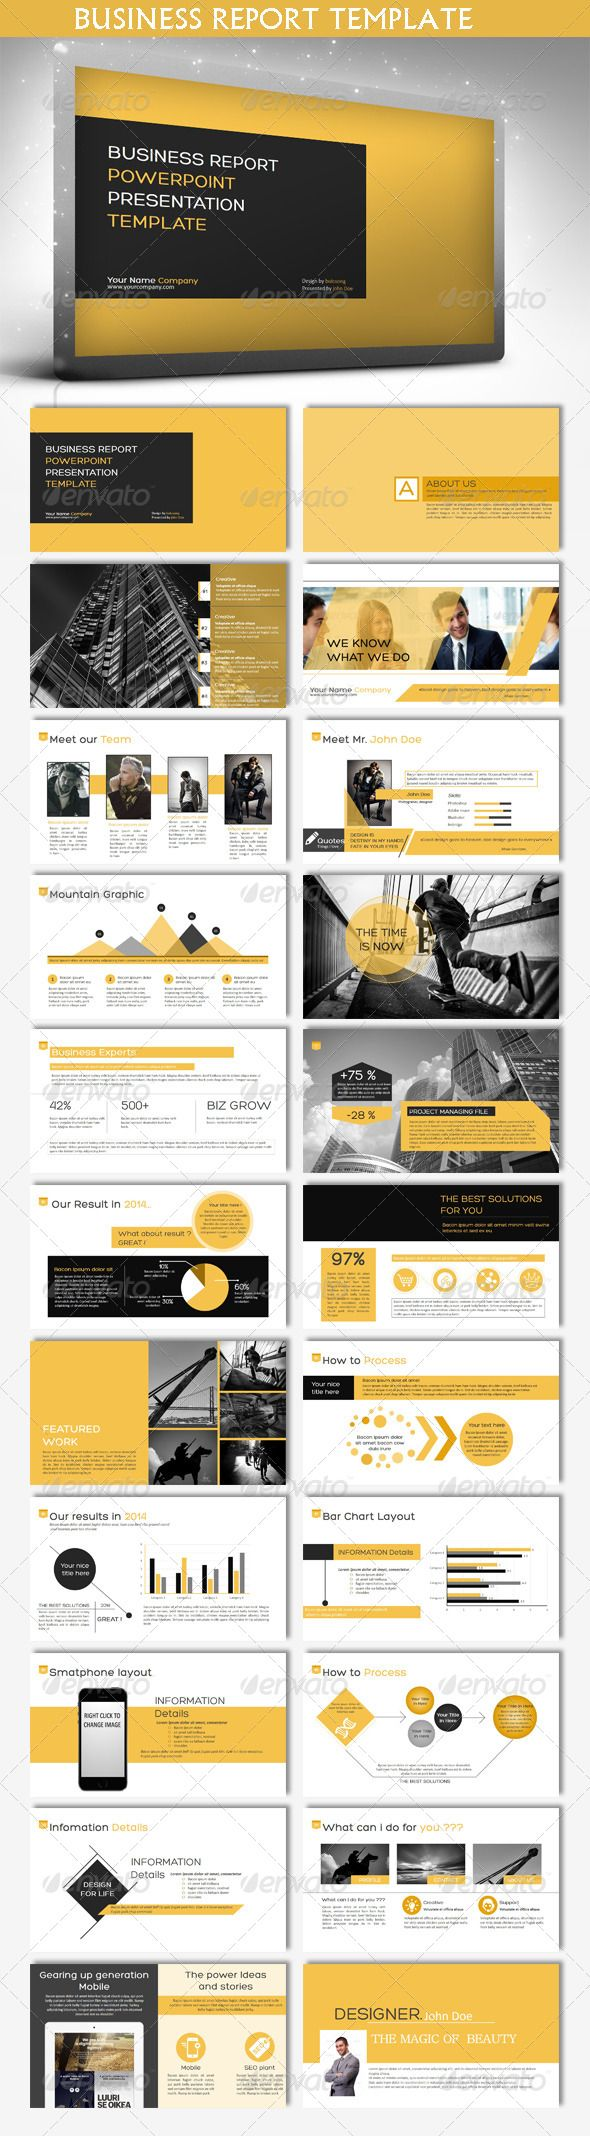 Best 50 presentation design inspiration images on pinterest page business report powerpoint template powerpoint templates powerpoint powerpointtemplate presentation toneelgroepblik Image collections